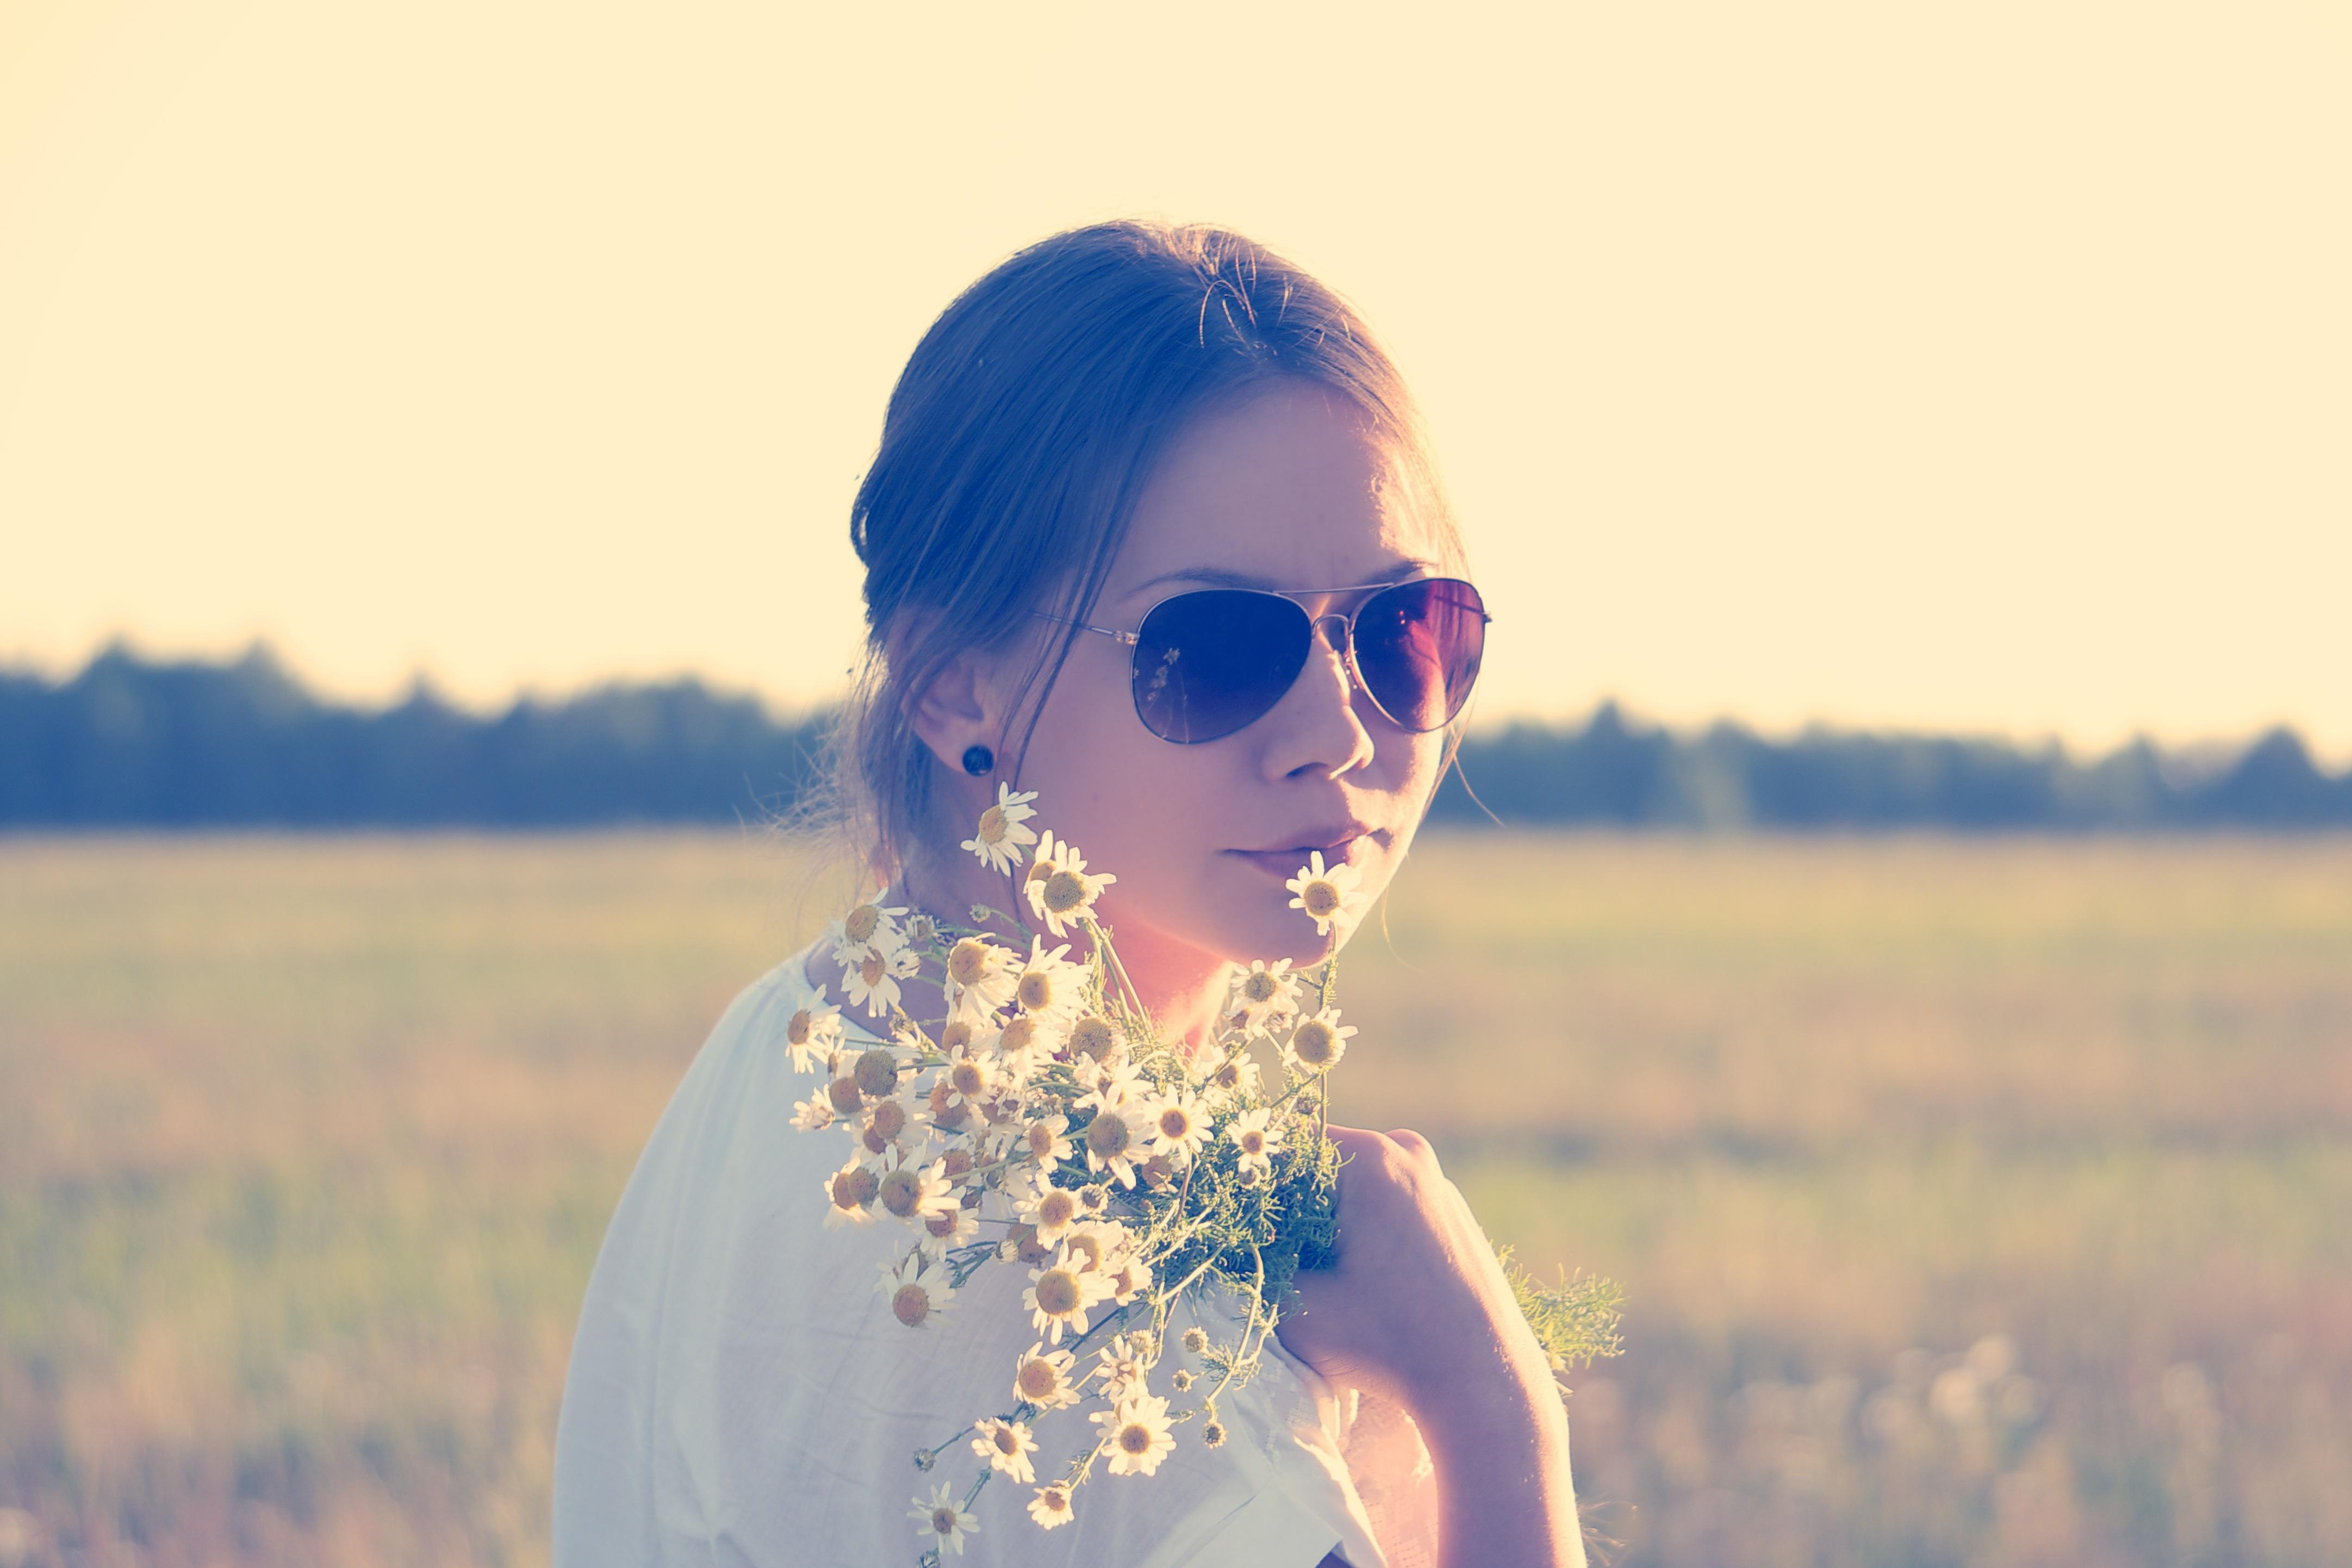 girl in sunglasses holding flowers